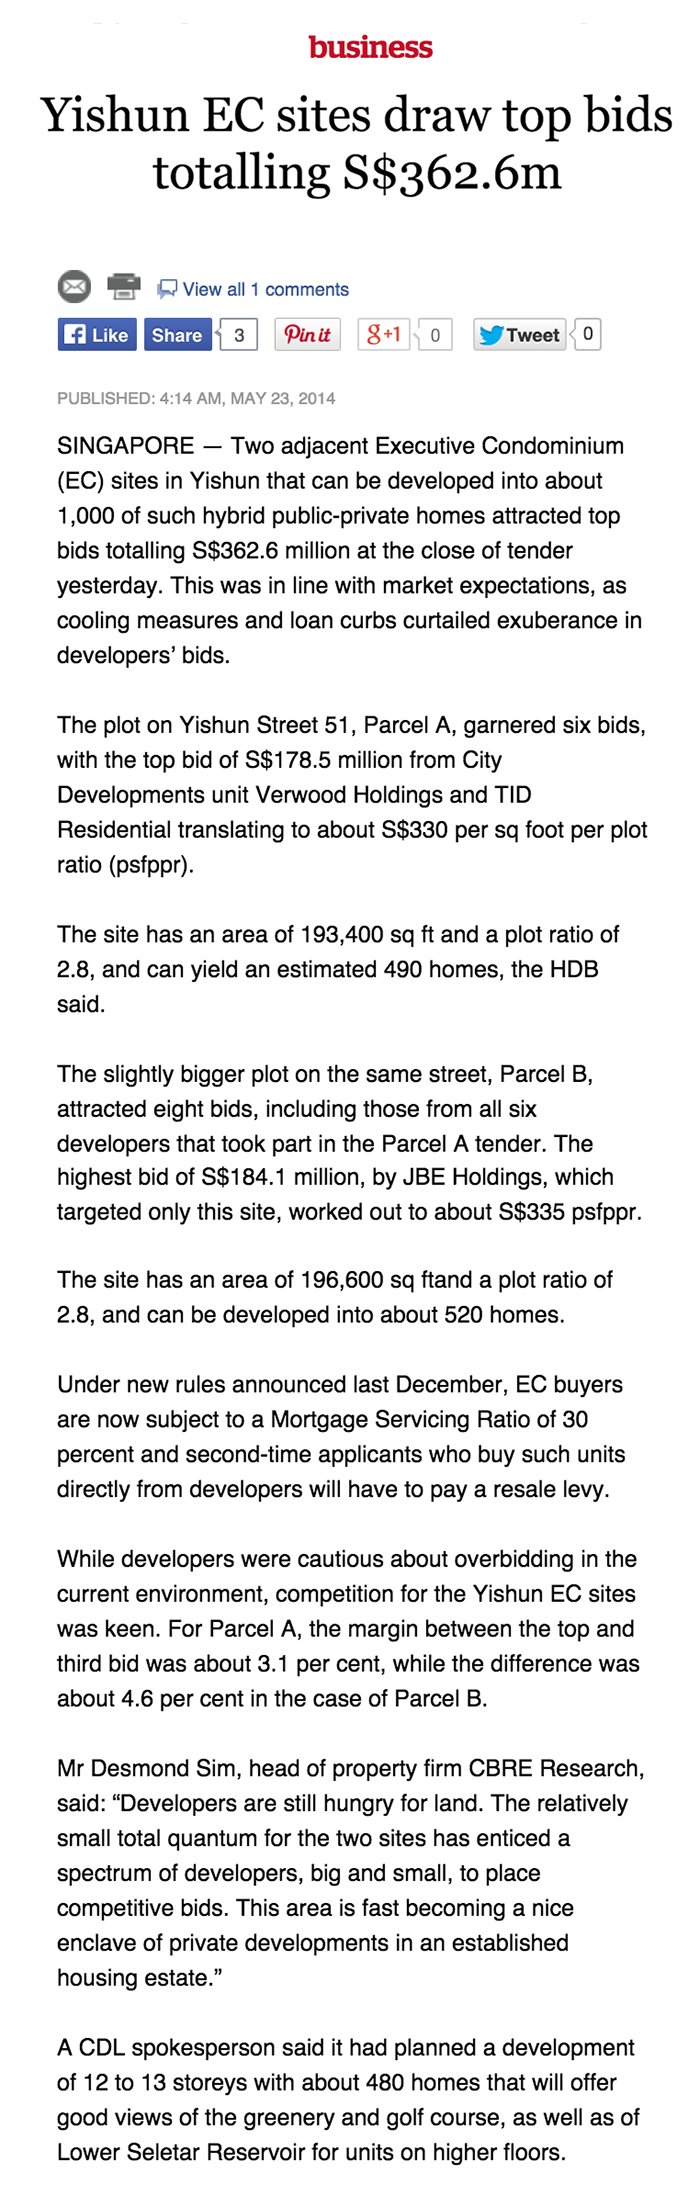 Article 1 Yishun EC sites draw top bids totalling S362.6m